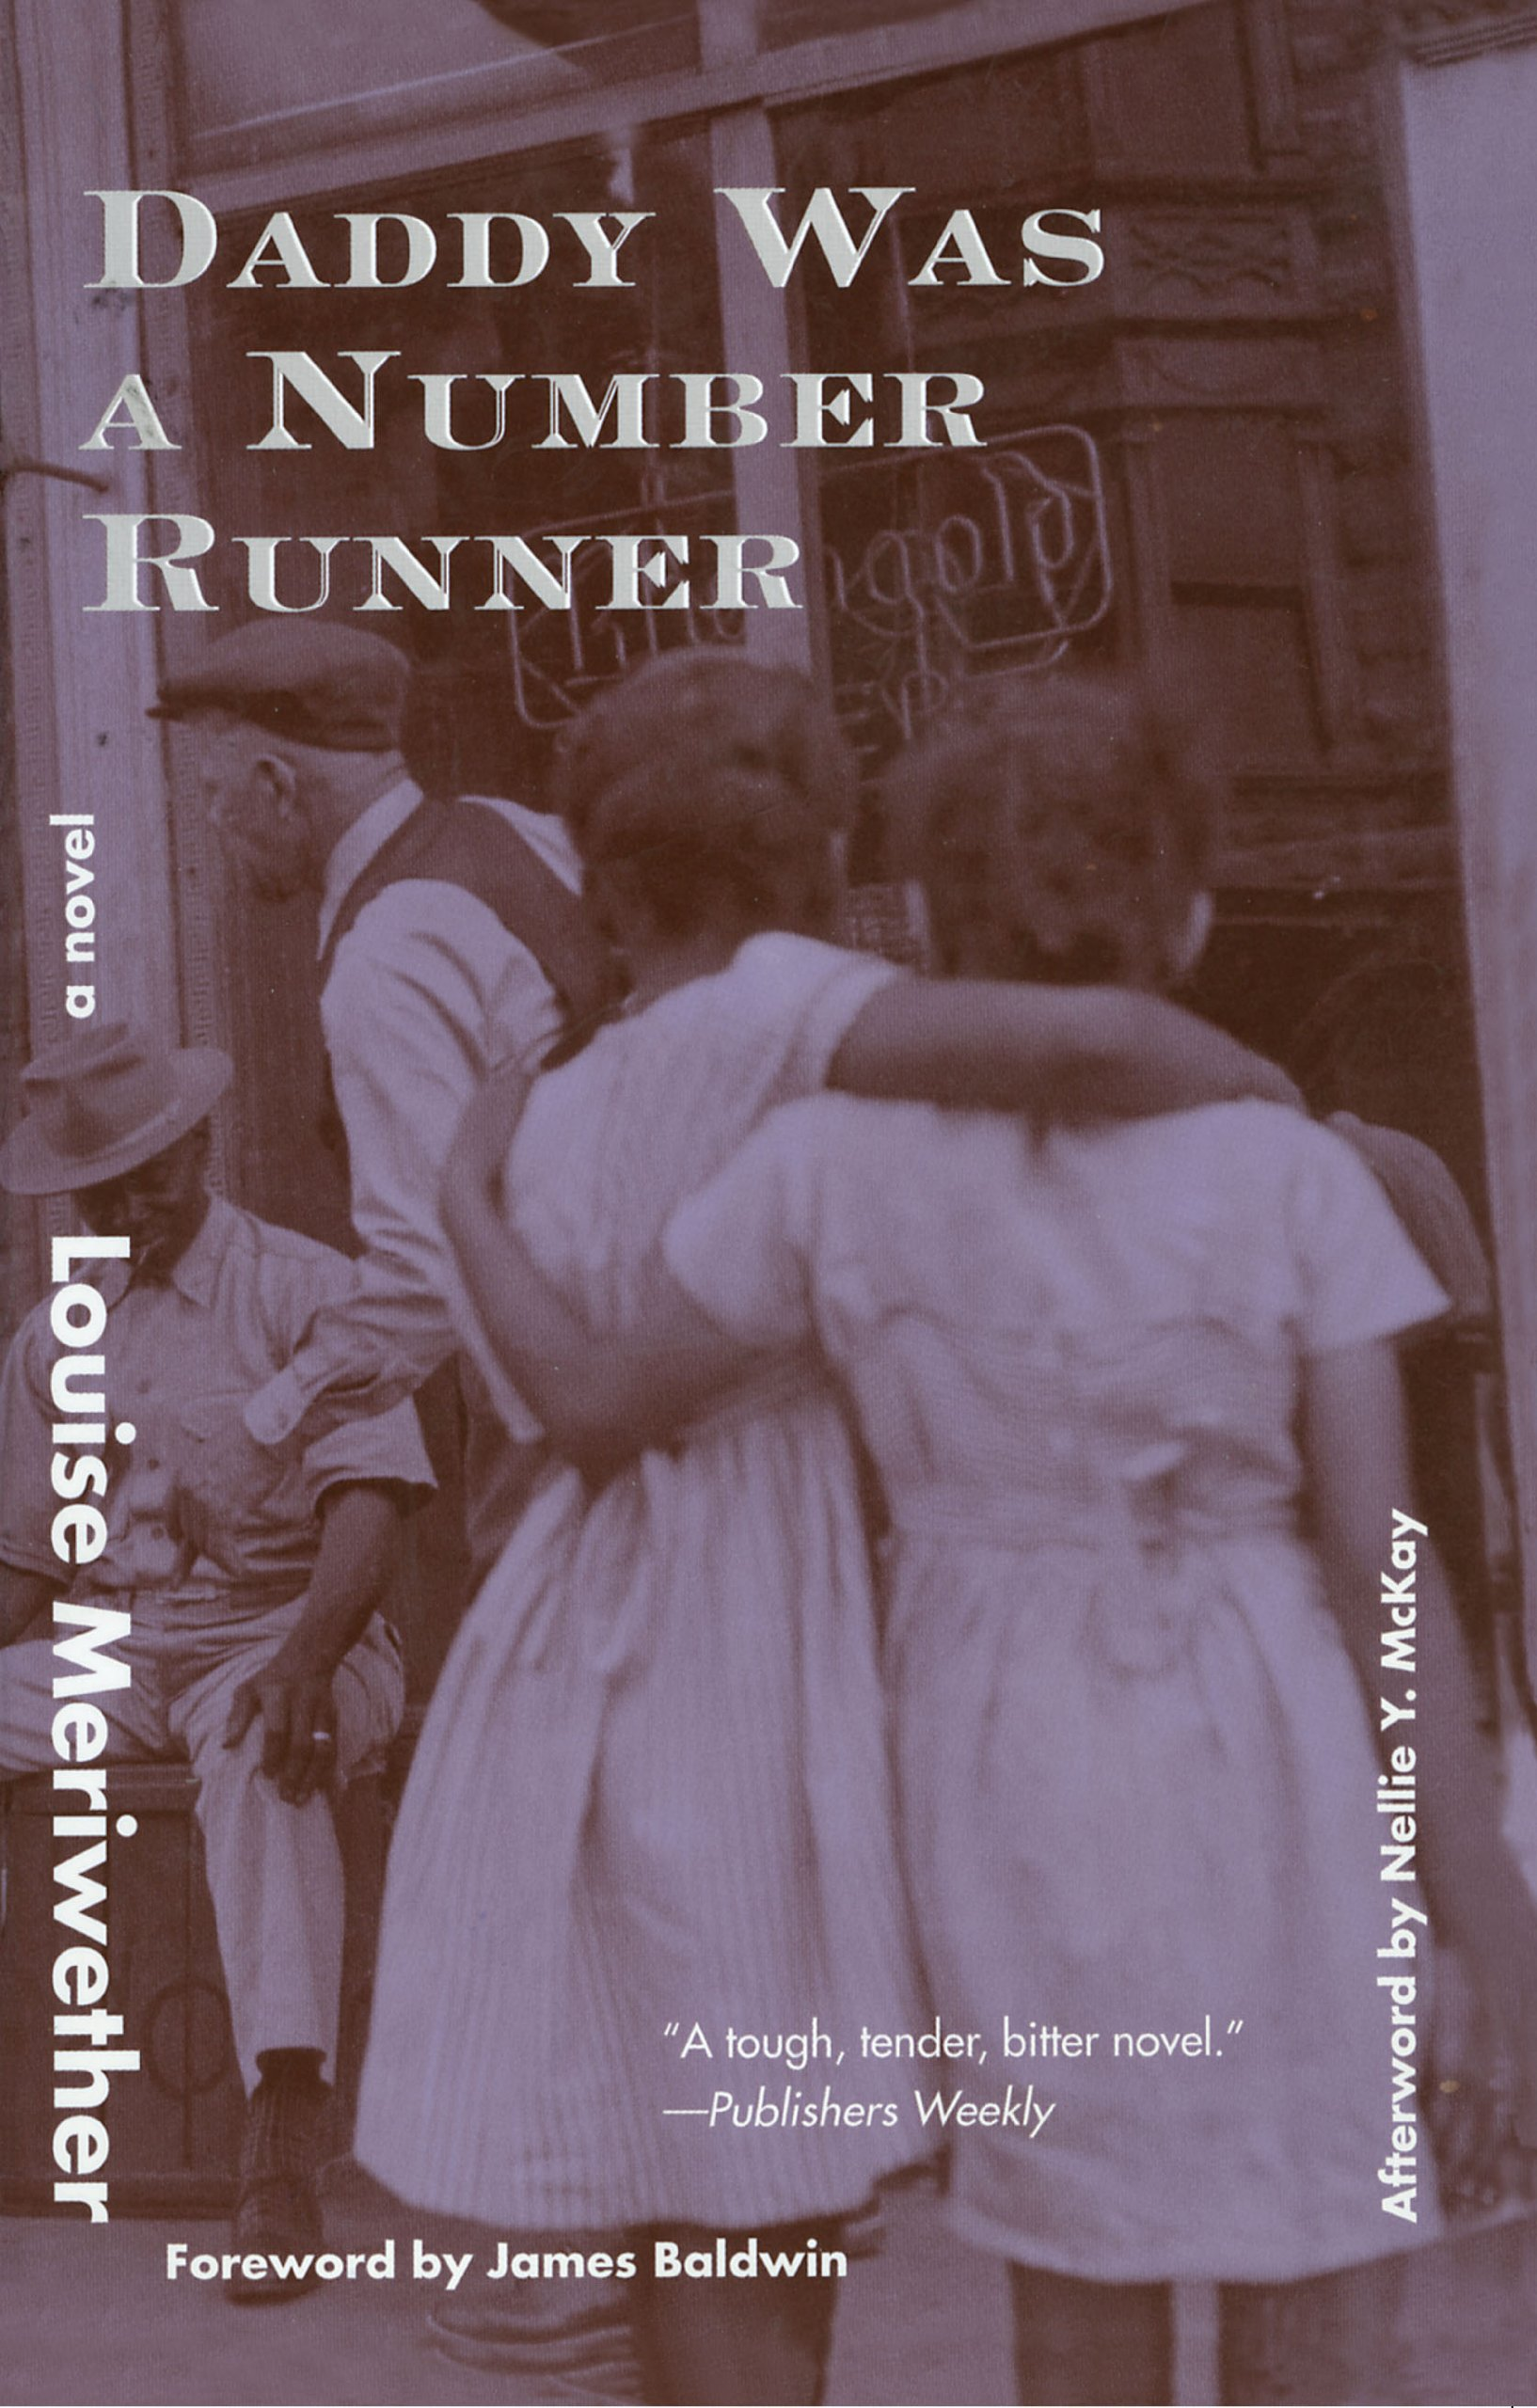 Download Daddy Was a Number Runner (Contemporary Classics by Women) PDF